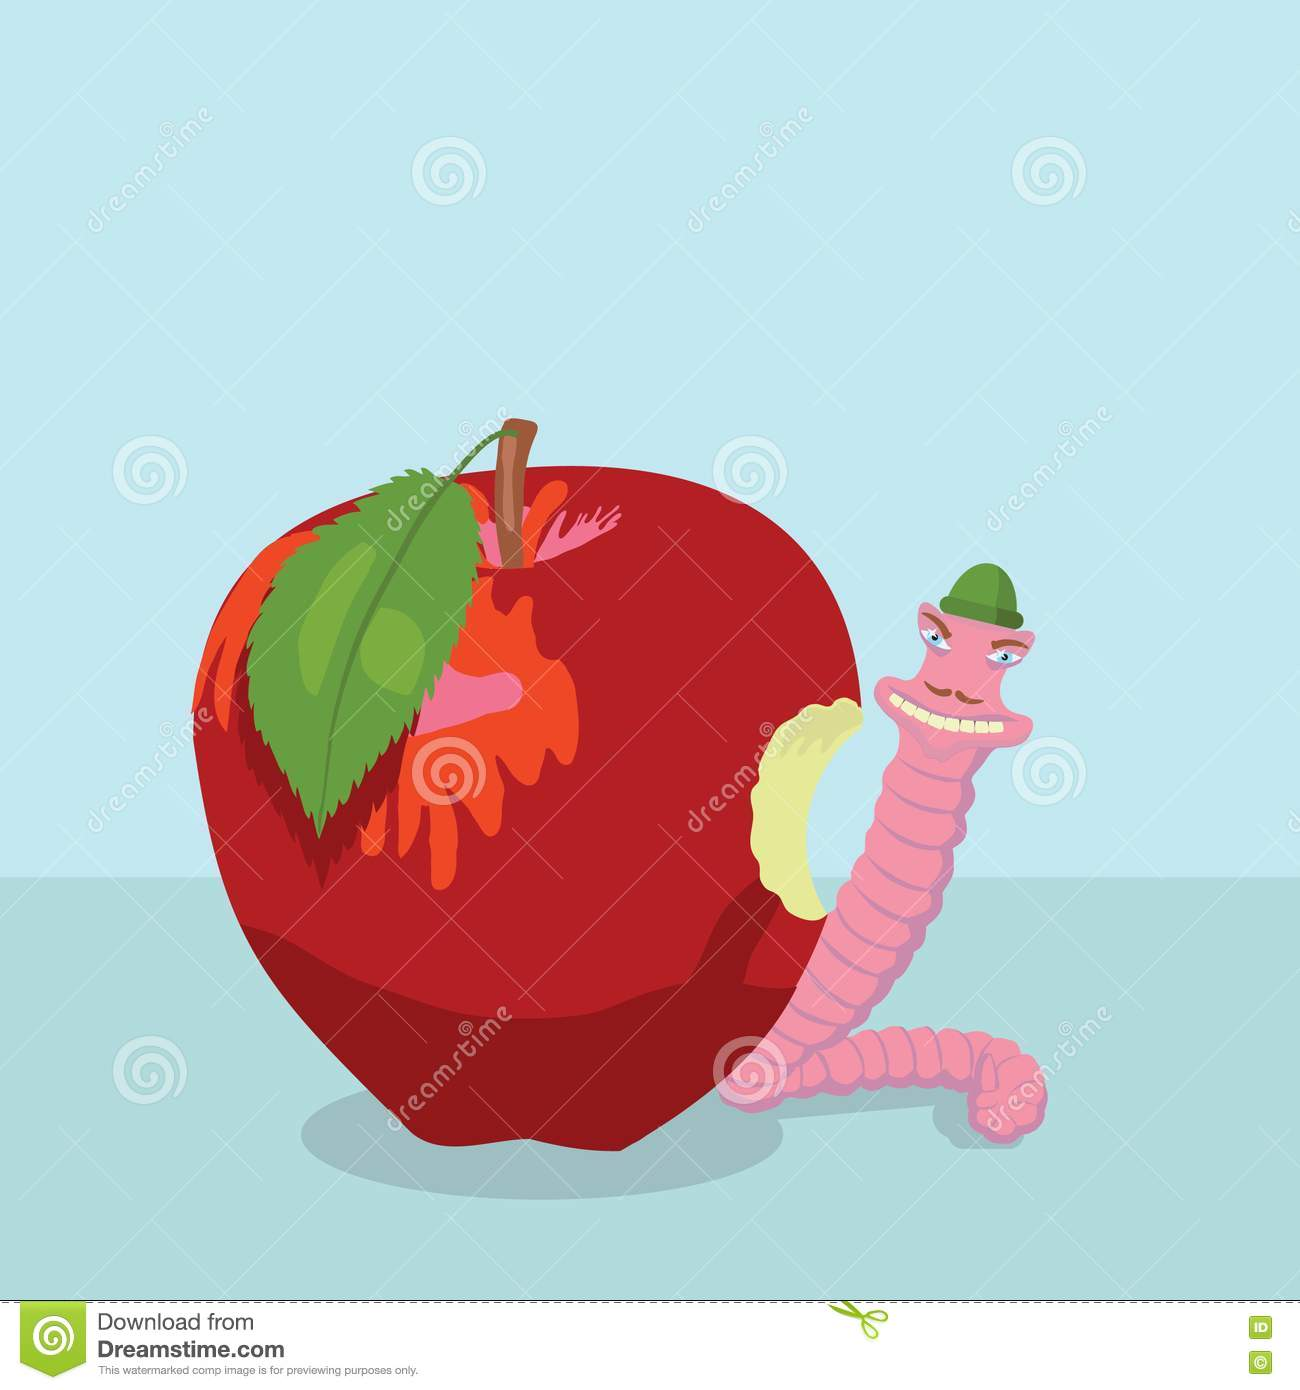 Apple And Worm Royalty Free Stock Image - Image: 14963026